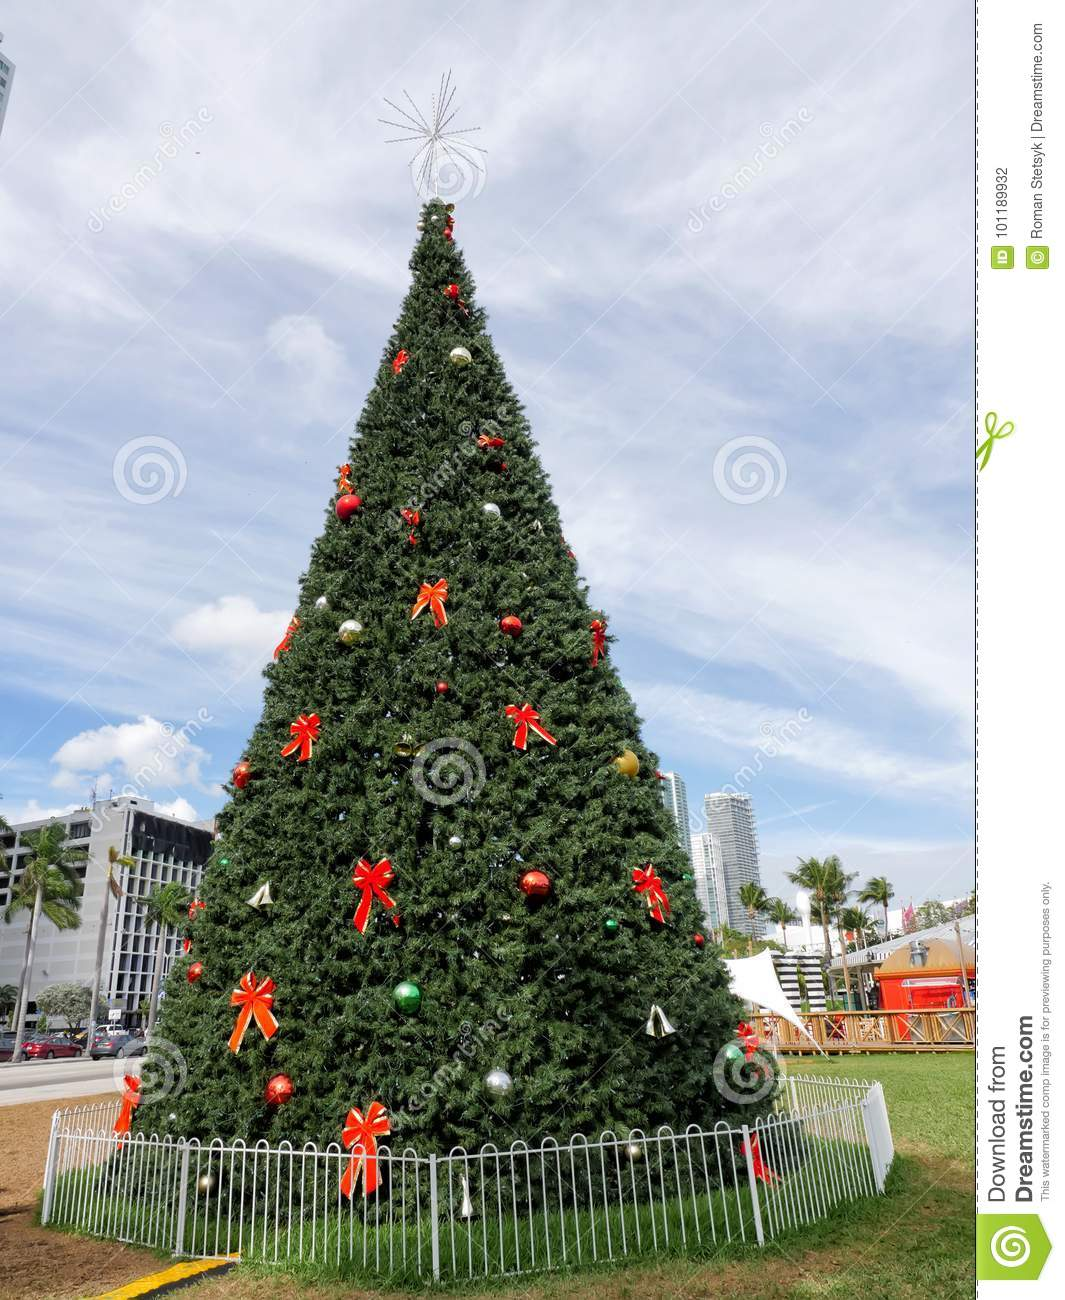 christmas tree in miami usa on cloudy sky background